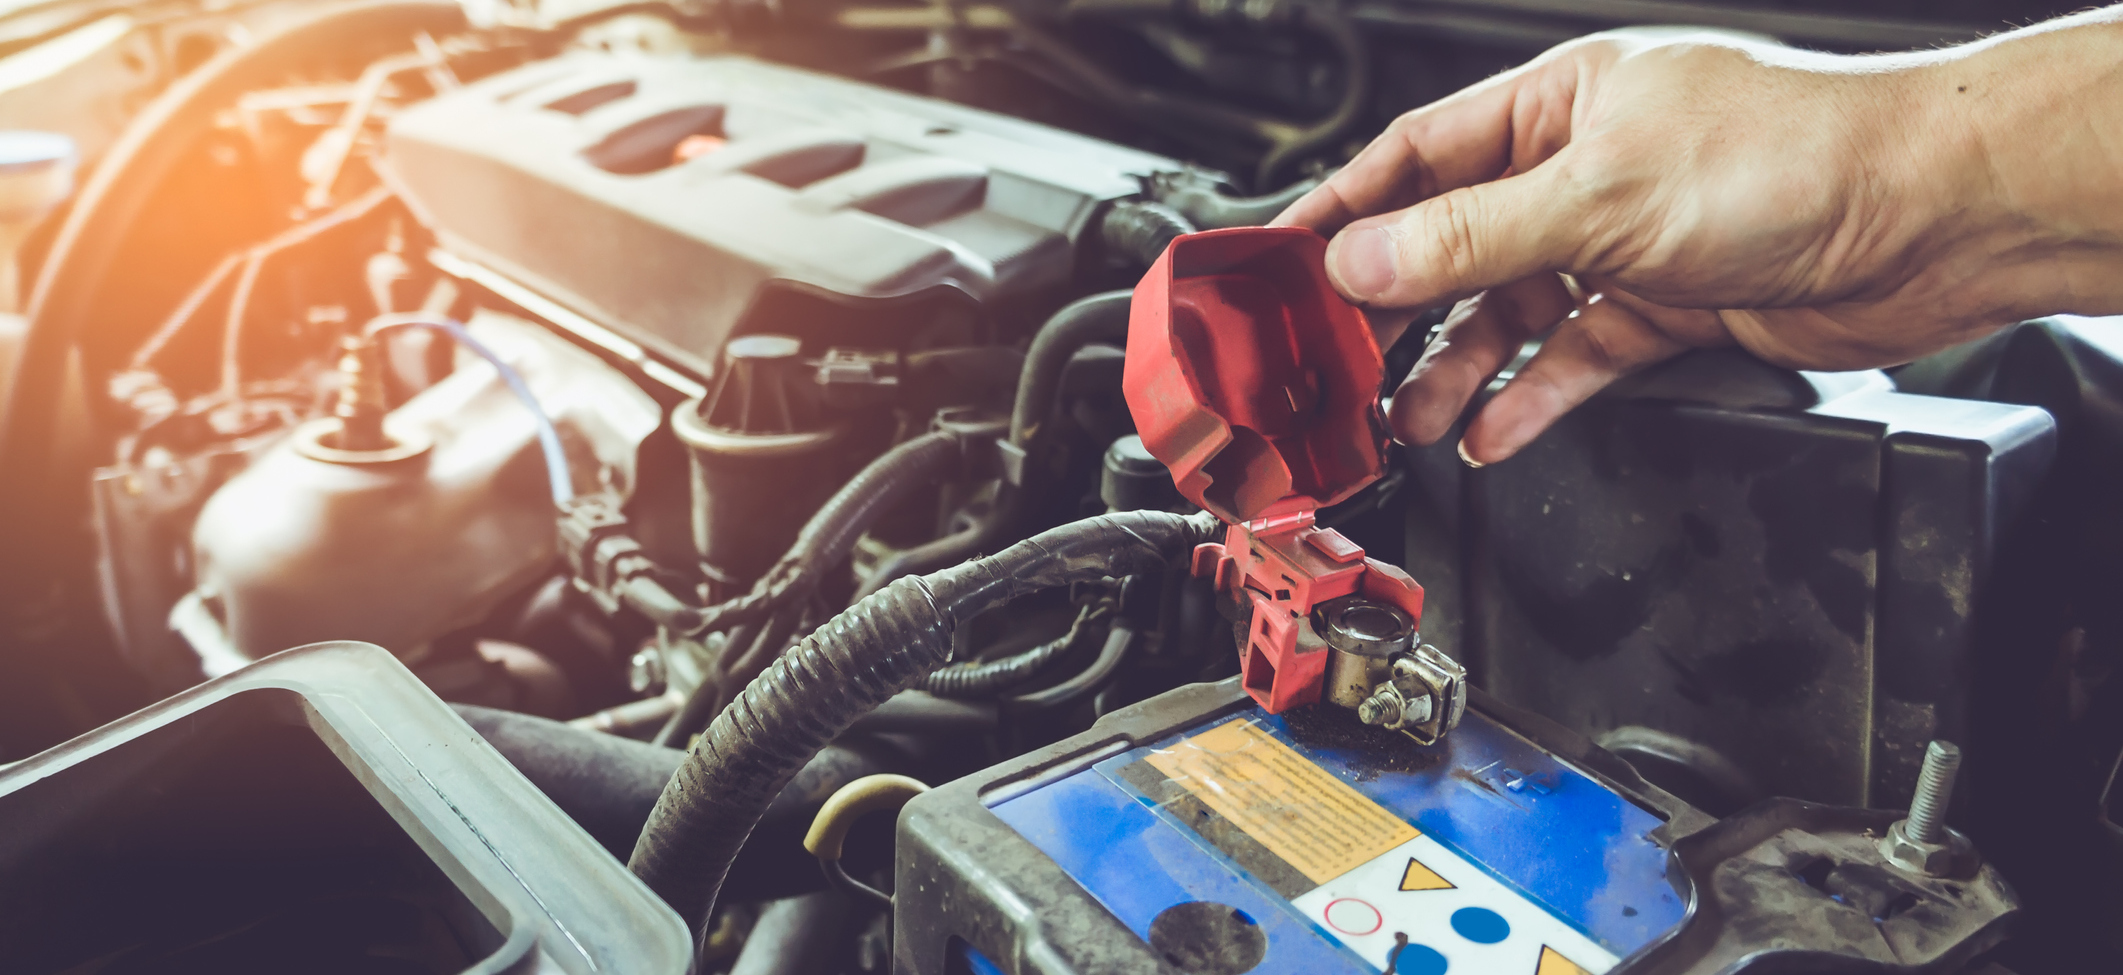 Battery Replacement Service in Waco, TX